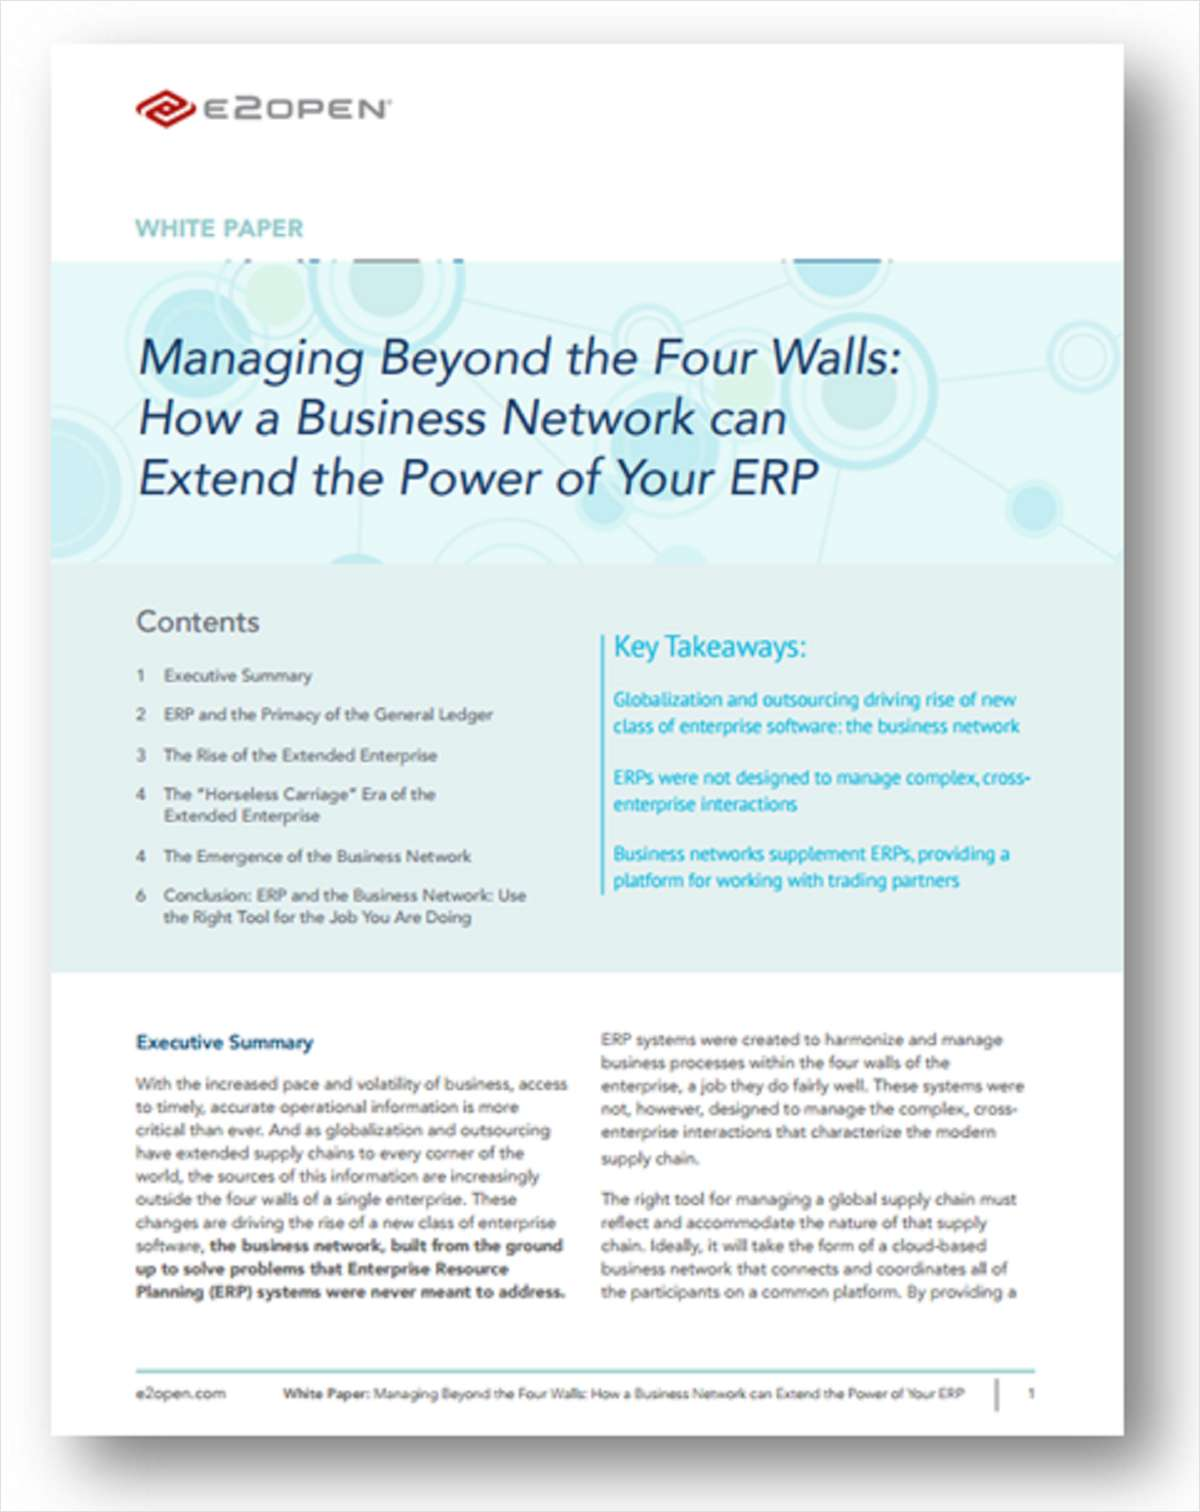 Managing Beyond the Four Walls: How a Business Network can Extend the Power of Your ERP